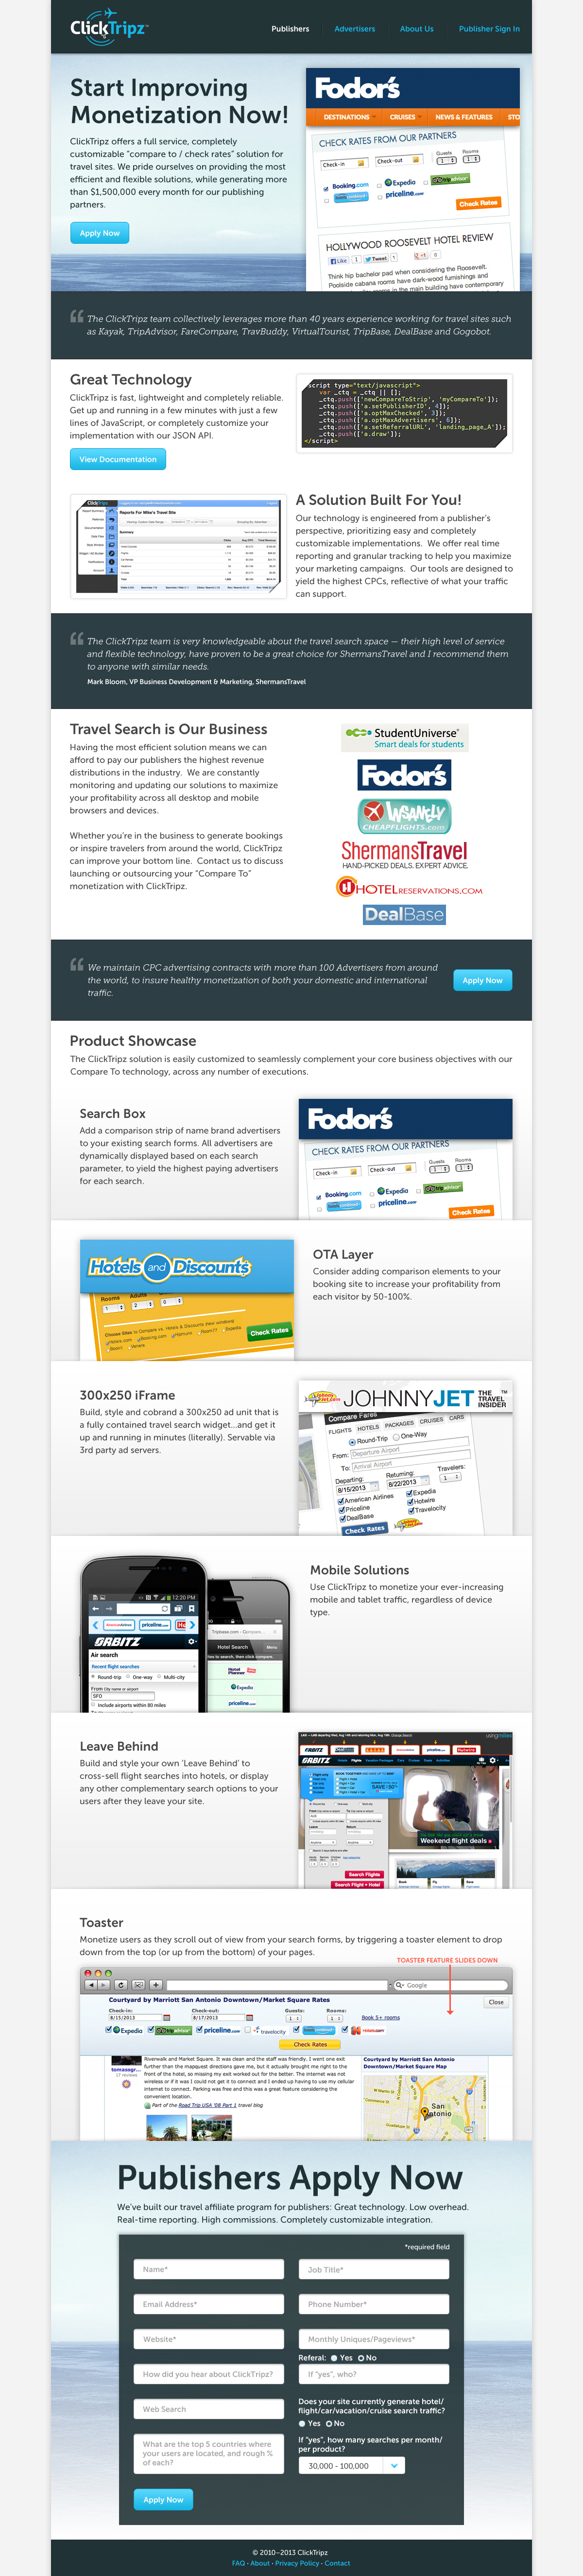 ClickTripz Publisher Page